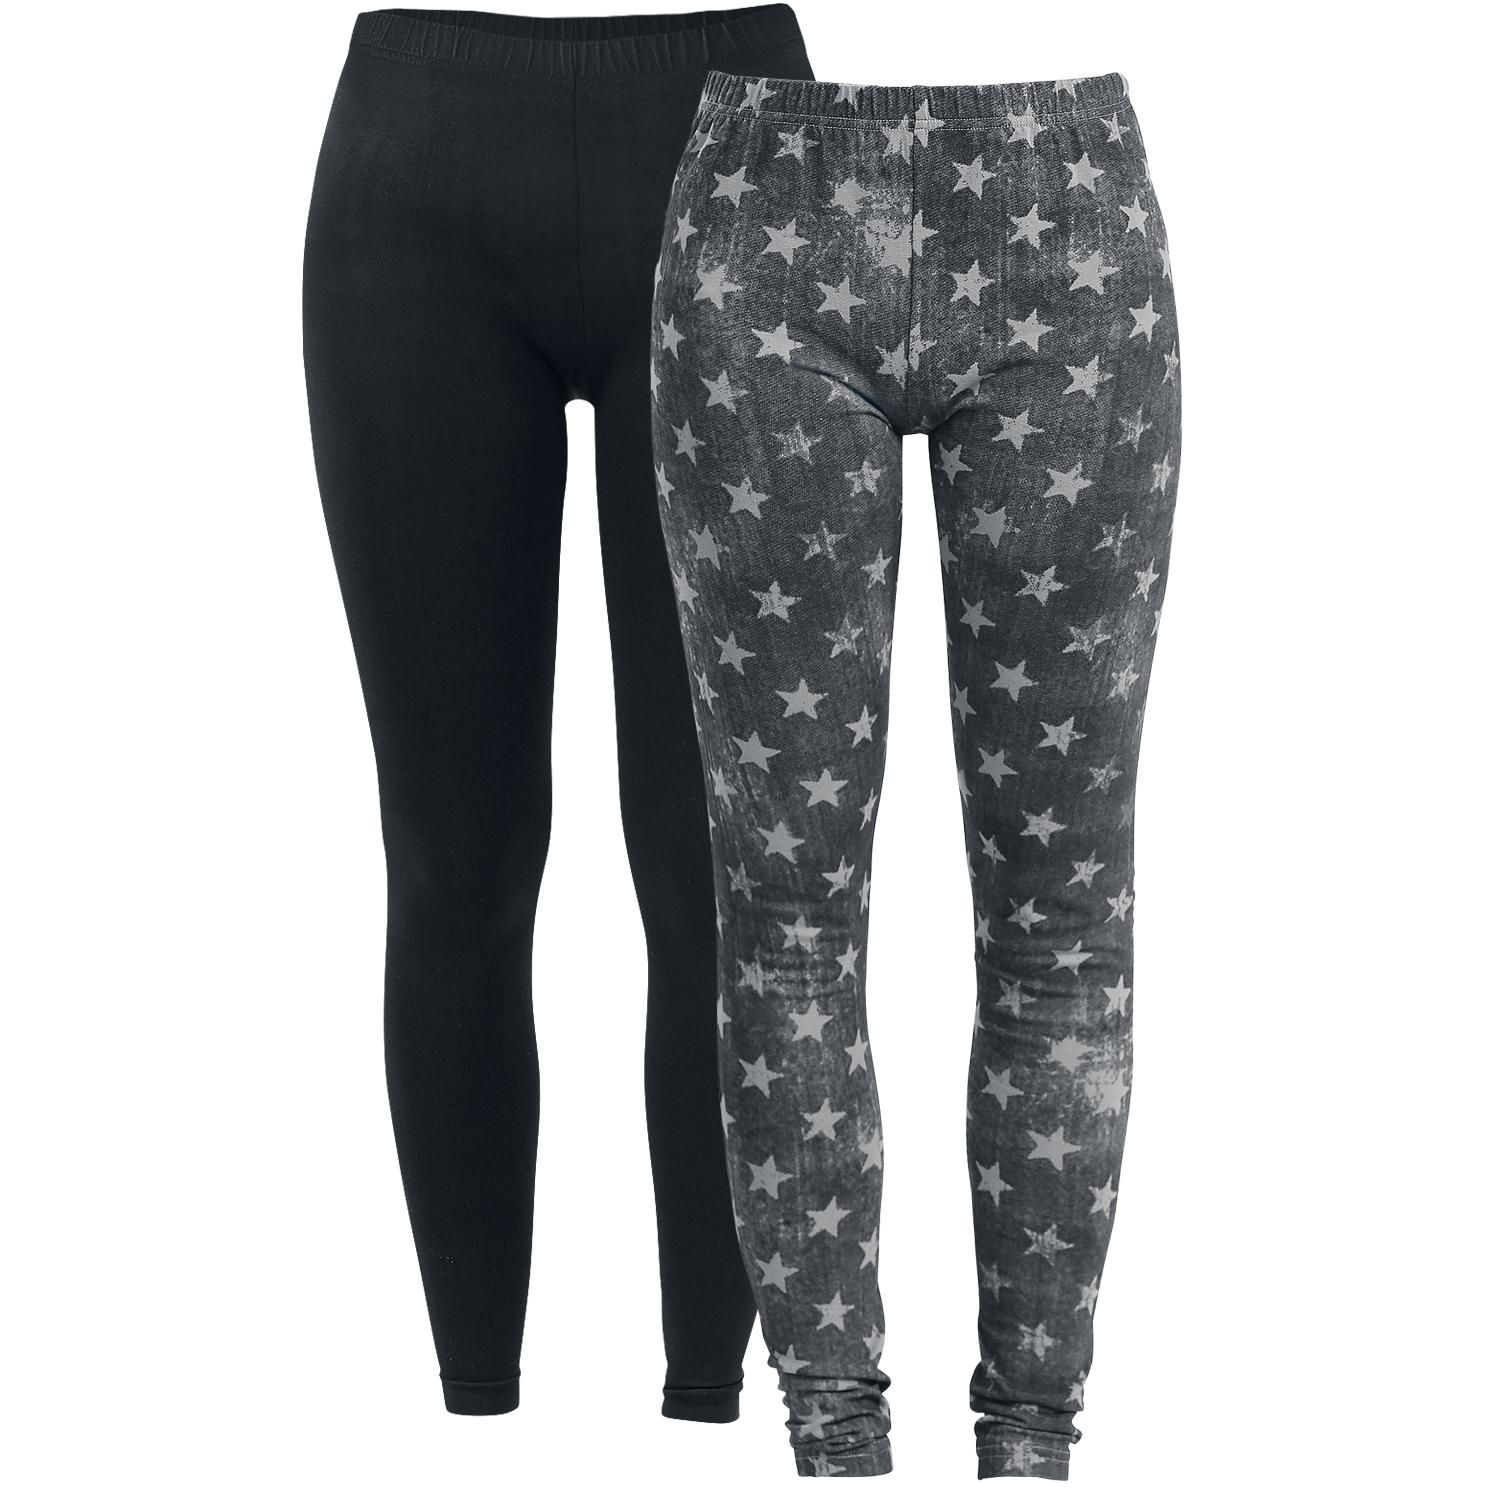 Ladies Leggings - 2 kpl setti - Legginsit - R.E.D. by EMP Koko 3XL hinta 25,99€